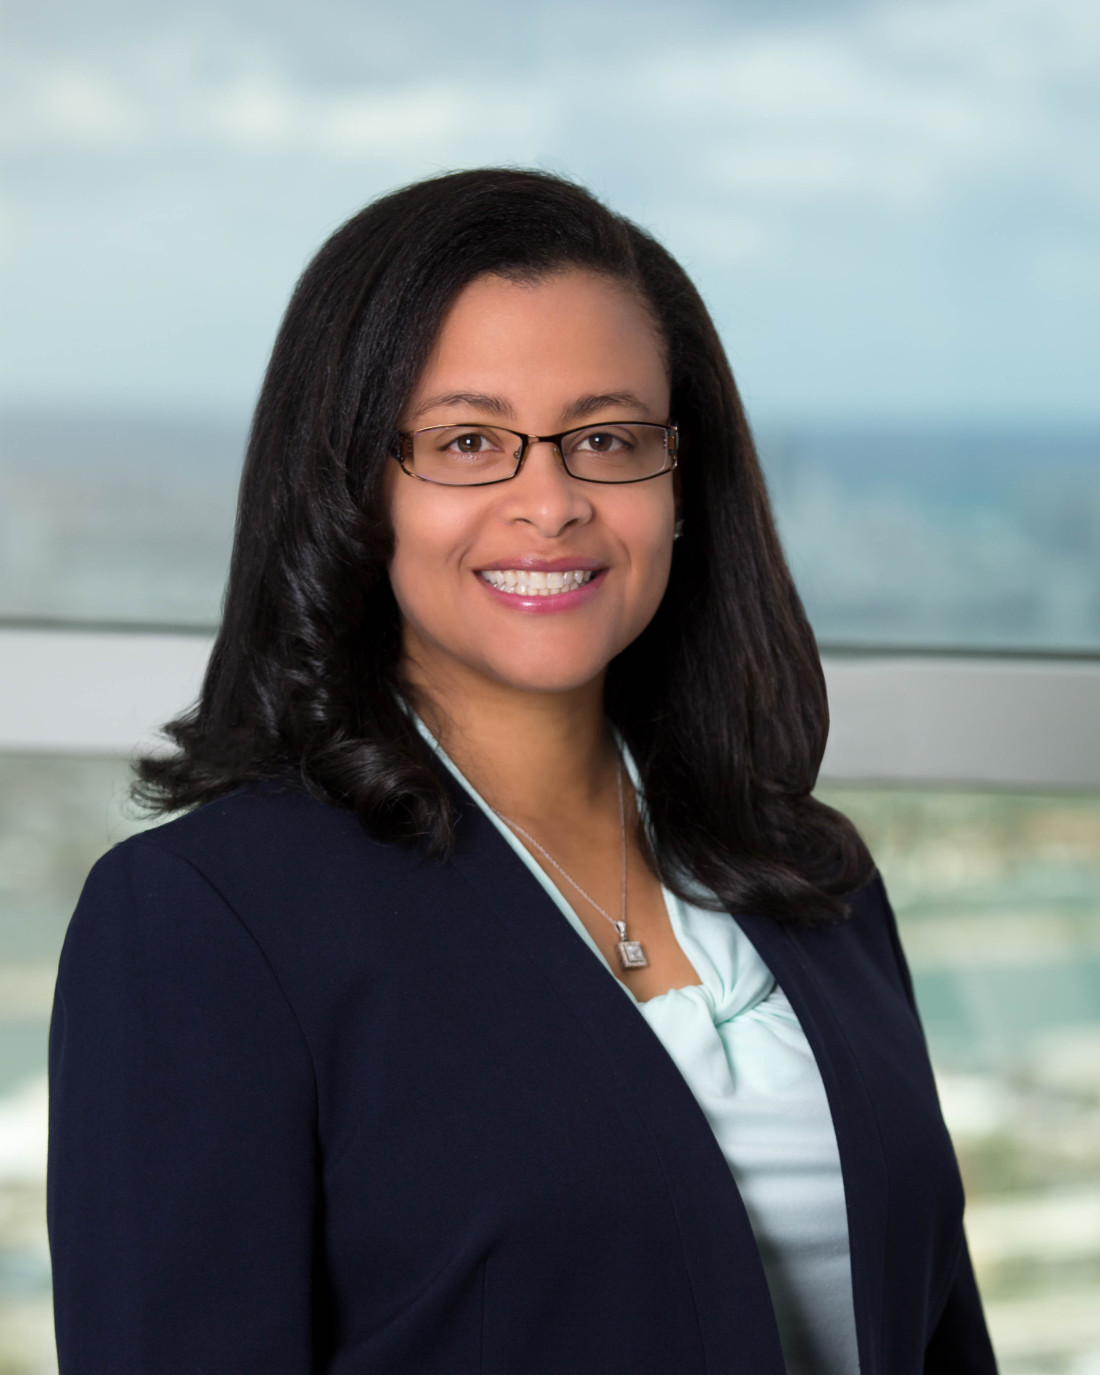 Justice Francis, who worked for Shutts in 2017 handling a wide variety of insurance matters, is the first Caribbean-American to serve on the Florida Supreme Court.